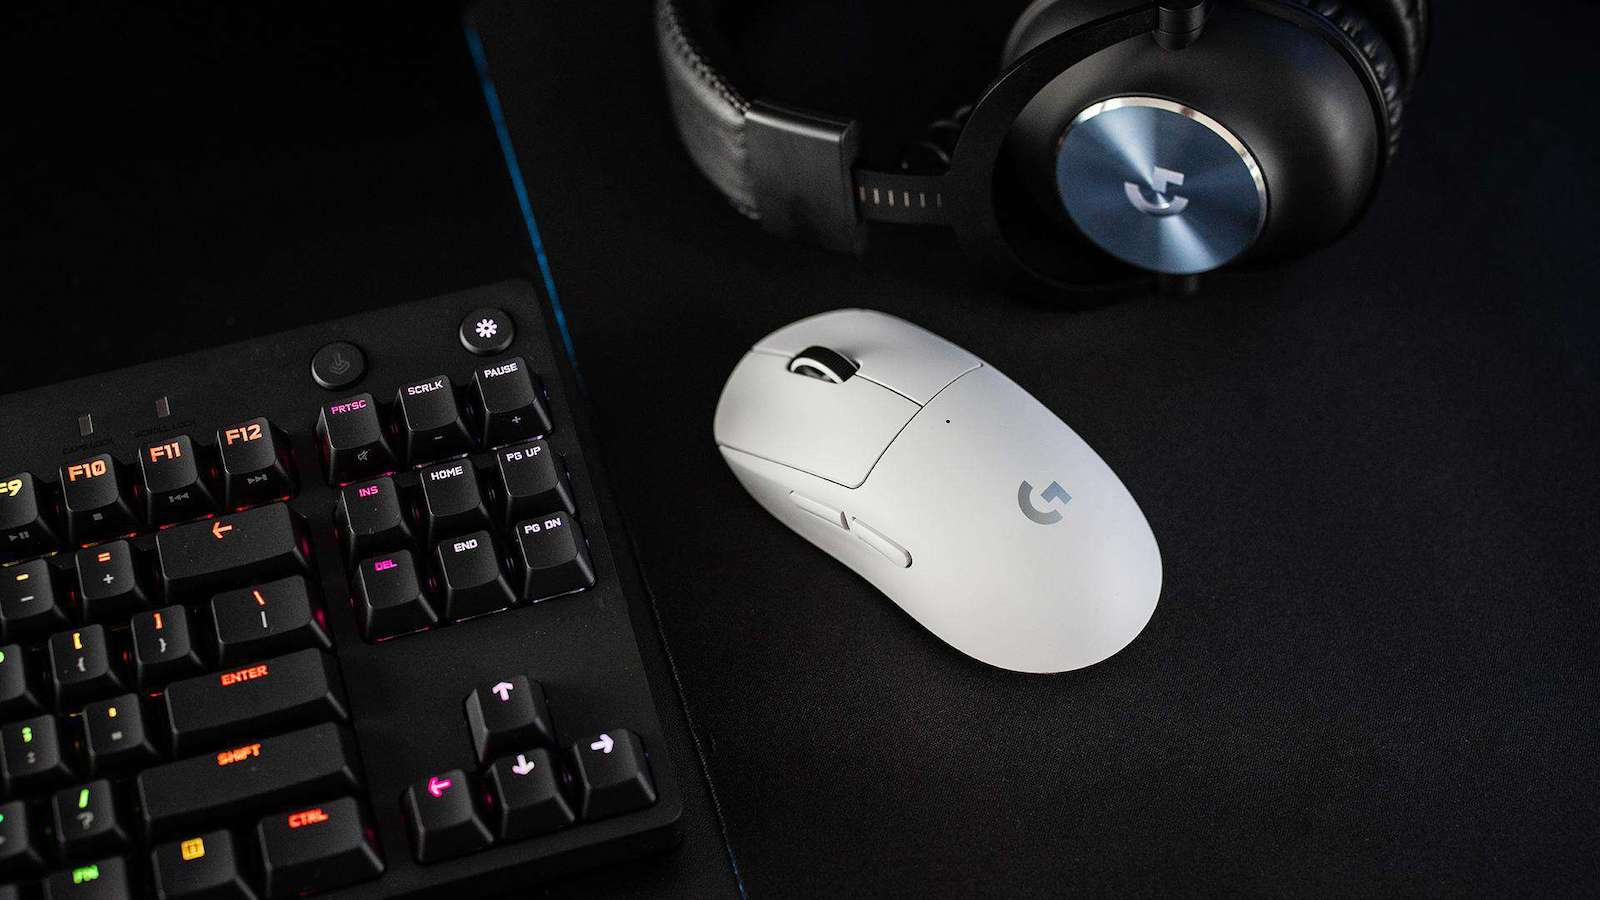 Logitech G Pro X Superlight wireless gaming mouse features the HERO 25K sensor